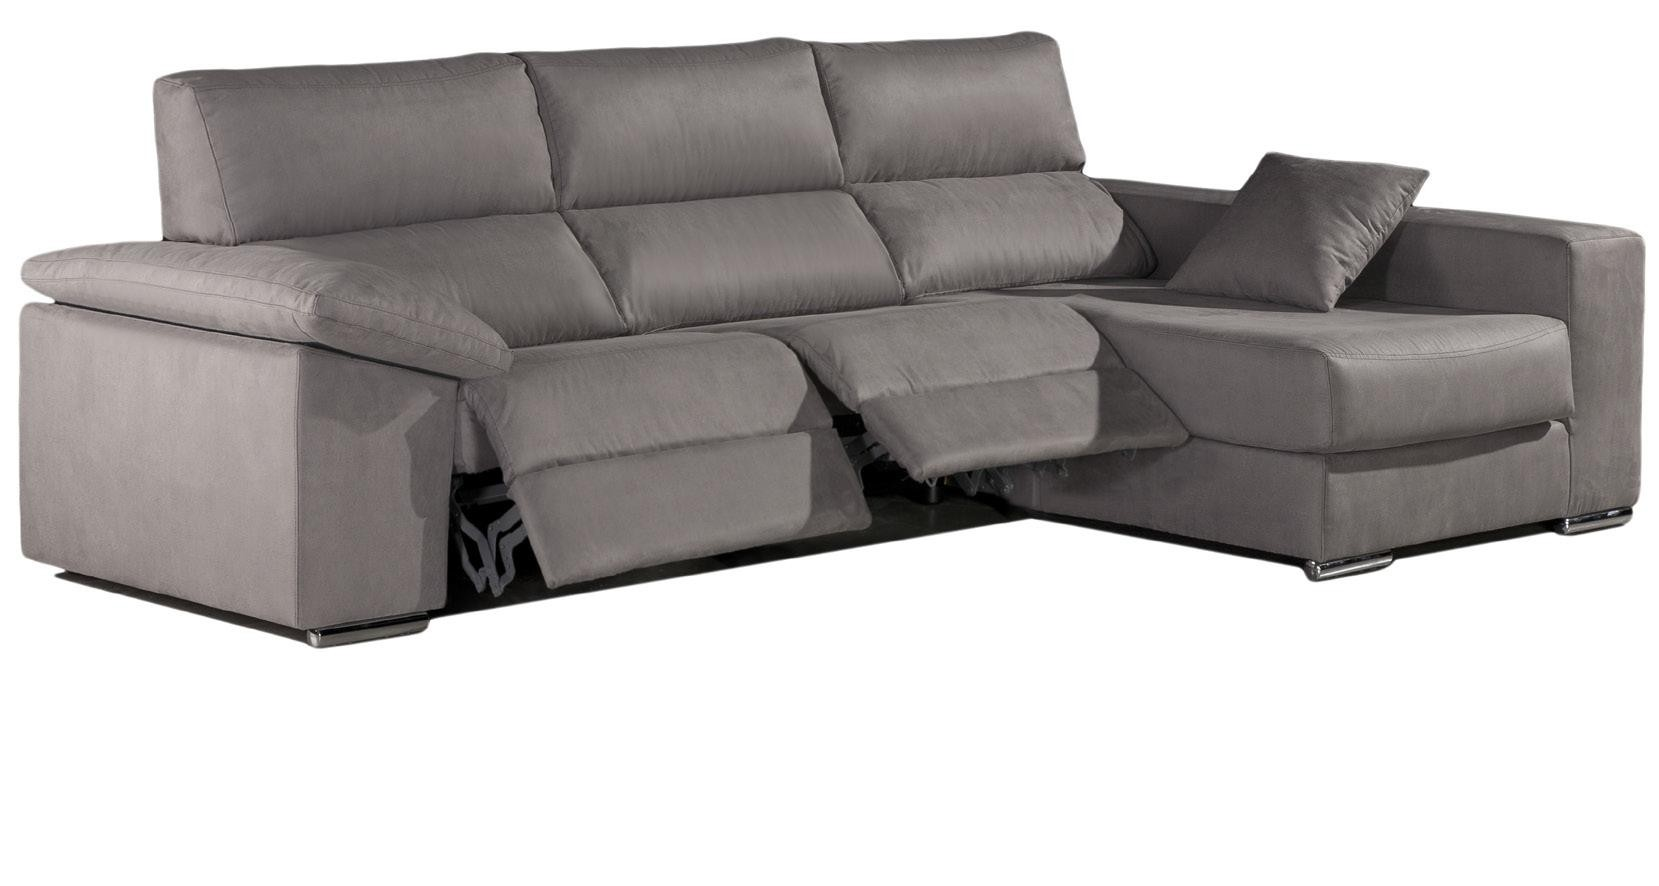 Fundas sofa cama ikea funda sofa cama hagalund ikea for Ikea sofa chaise longue cama